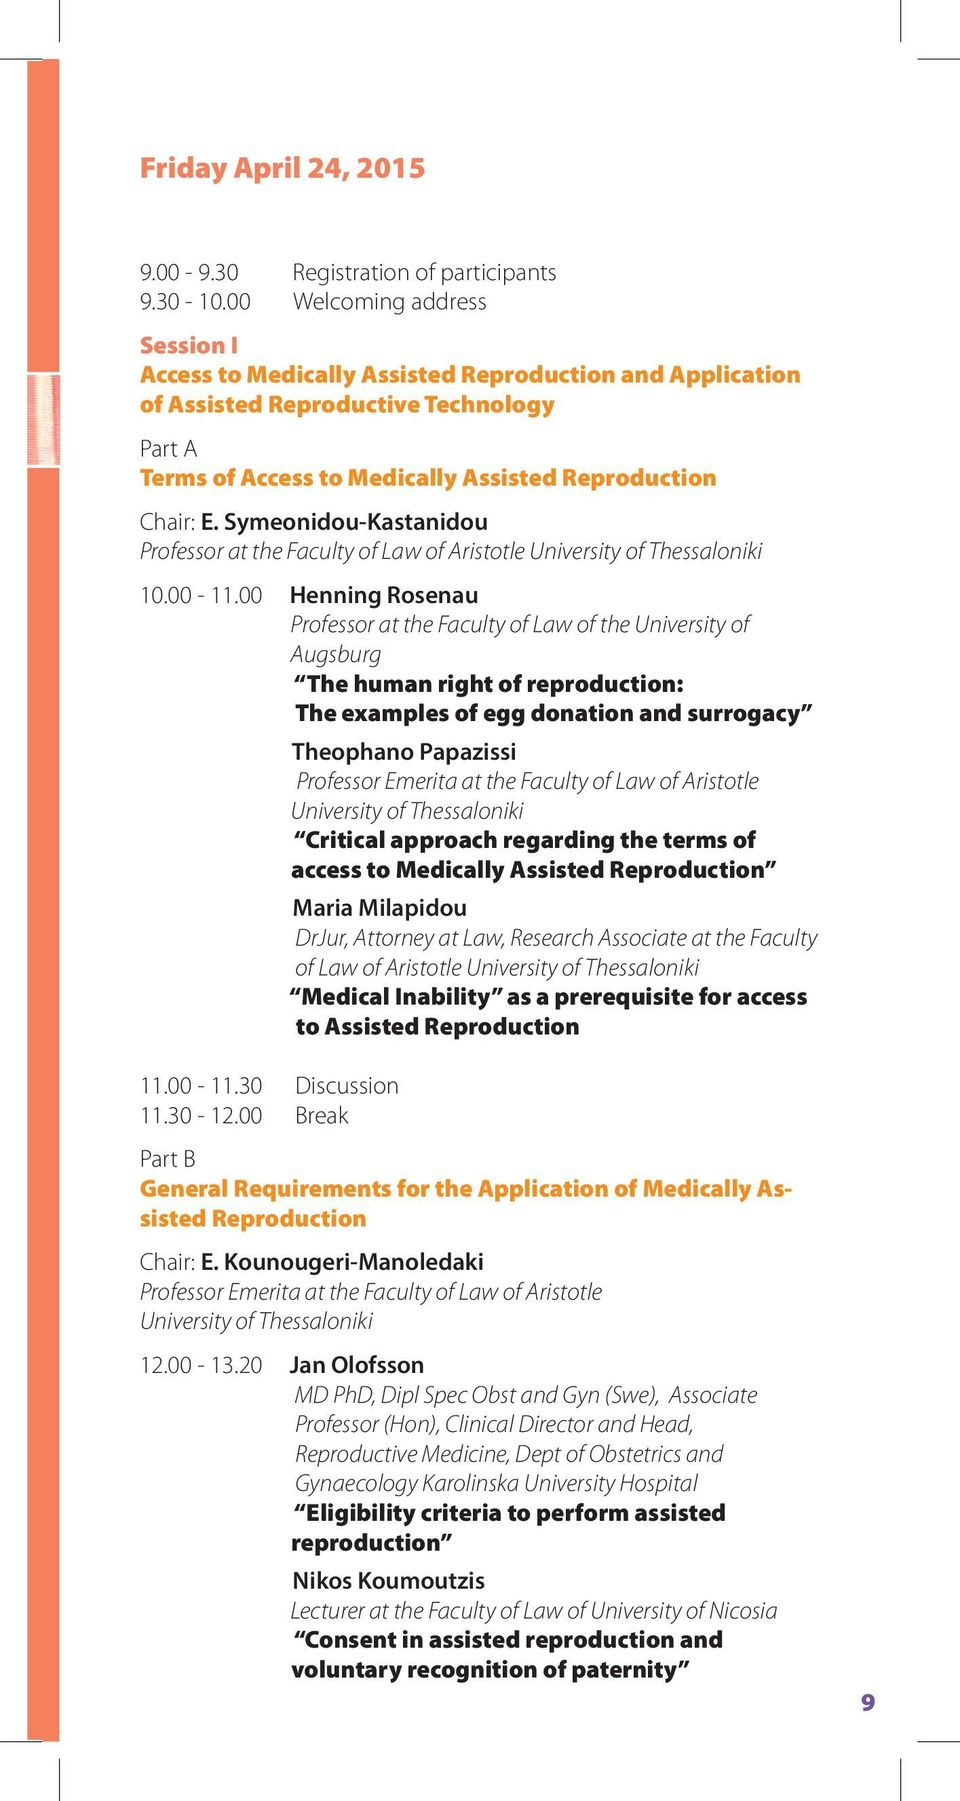 Symeonidou-Kastanidou Professor at the Faculty of Law of Aristotle University of Thessaloniki 10.00-11.